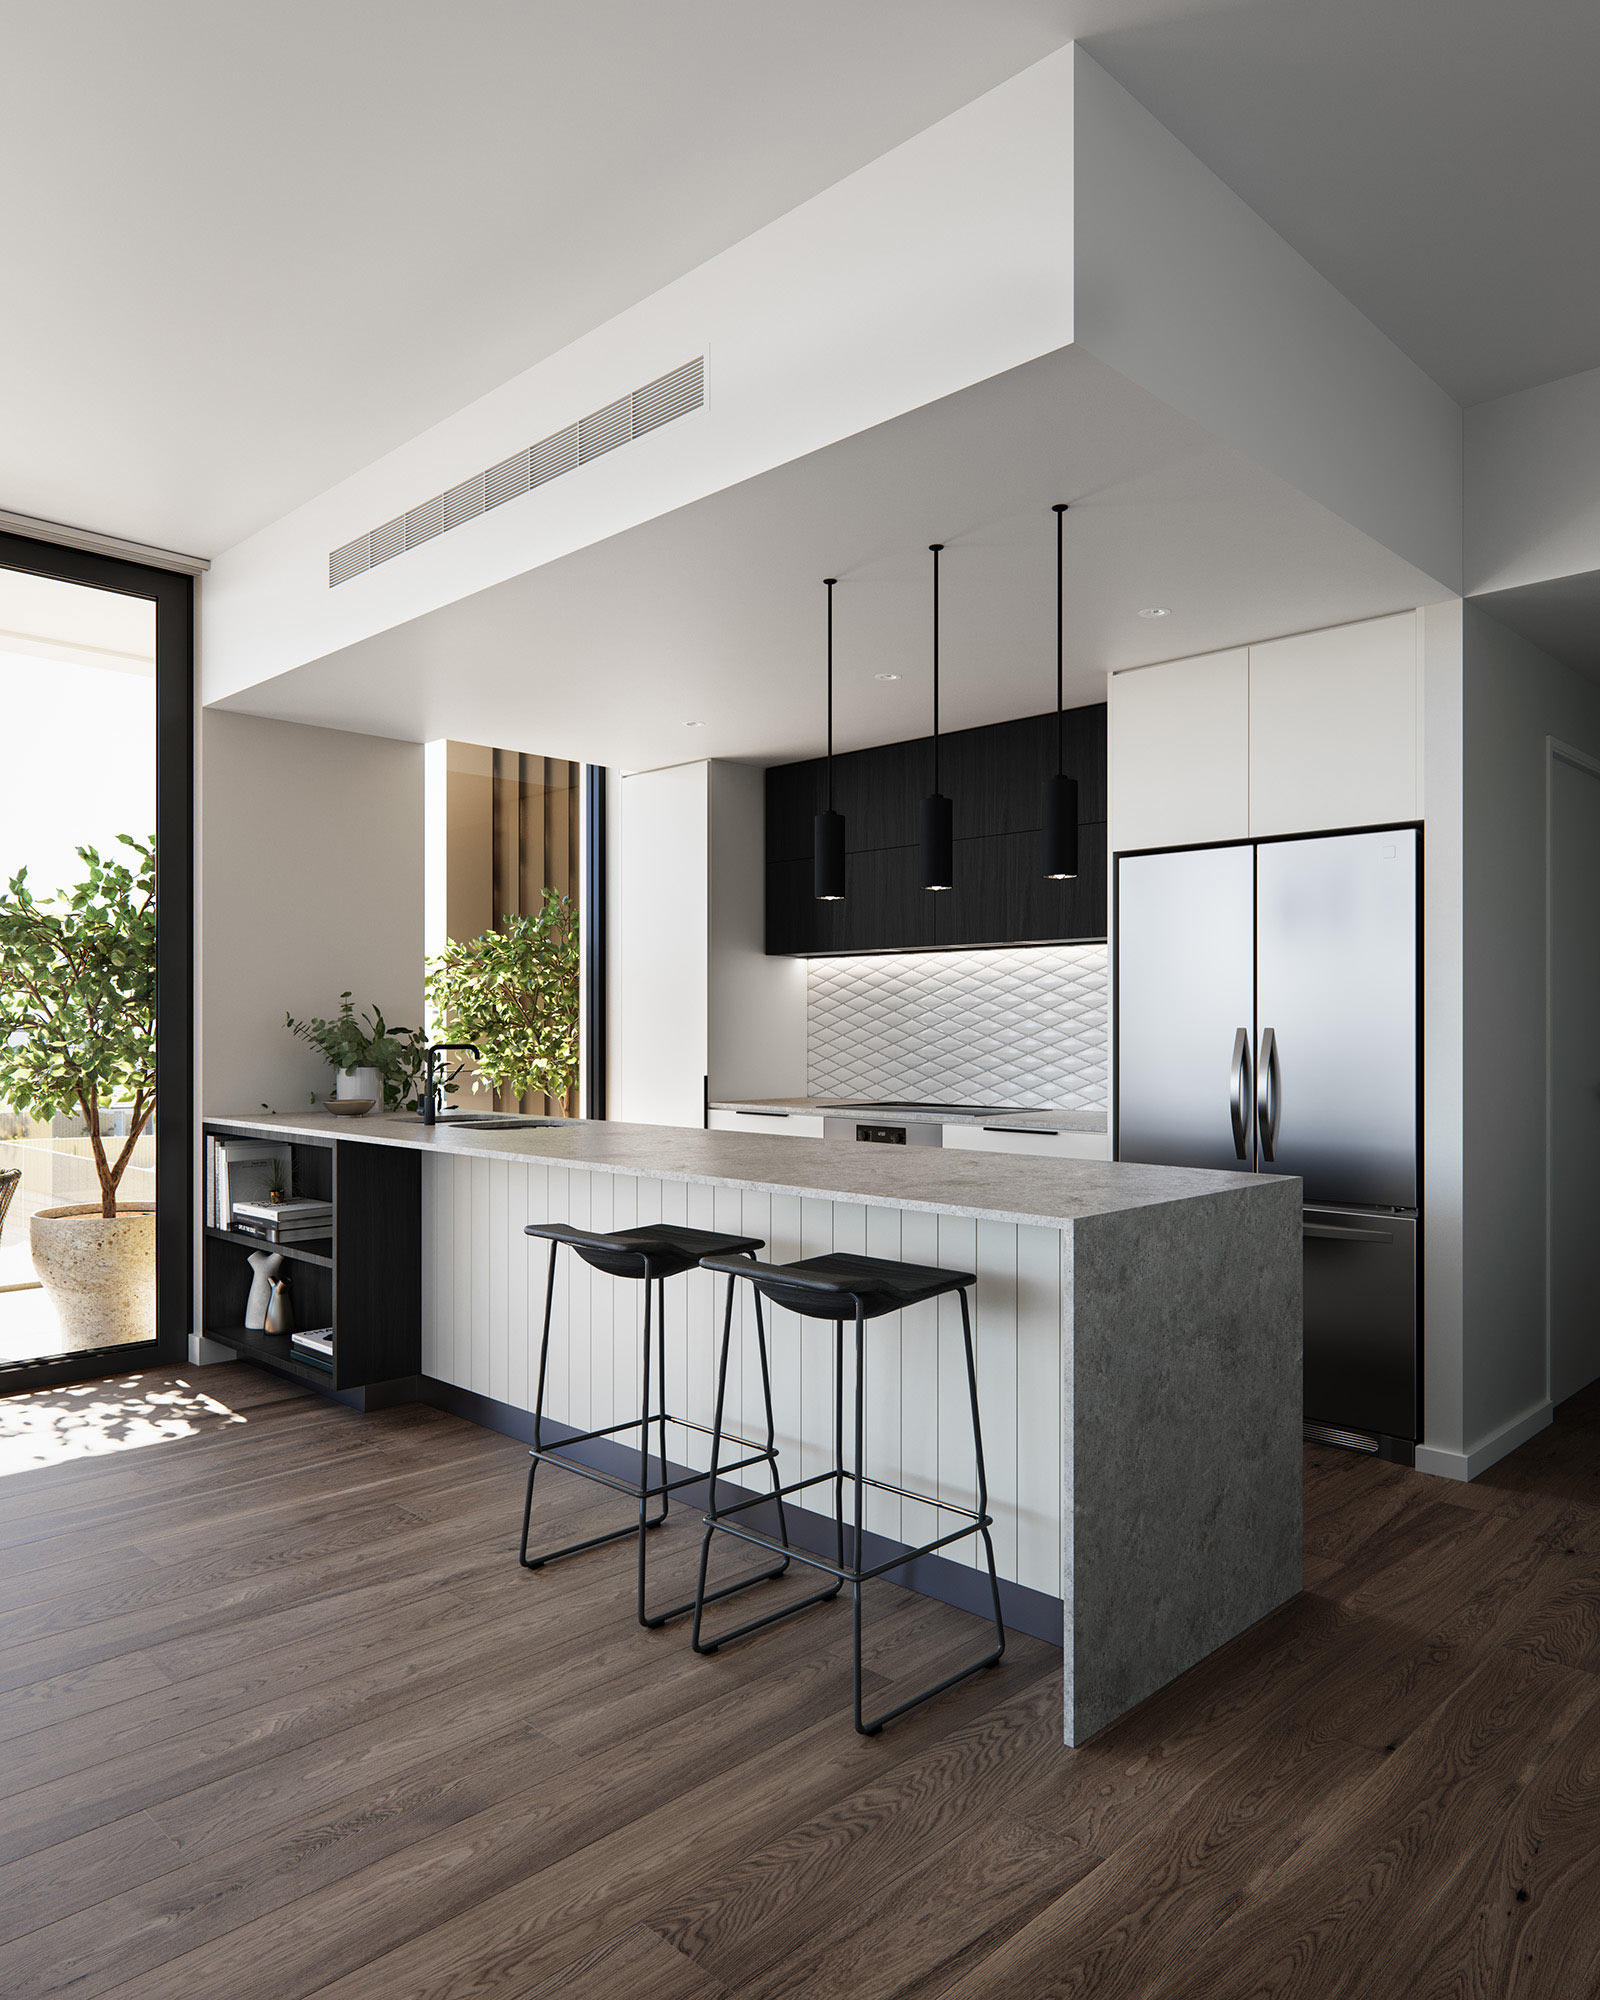 kitchen-render-2.jpg